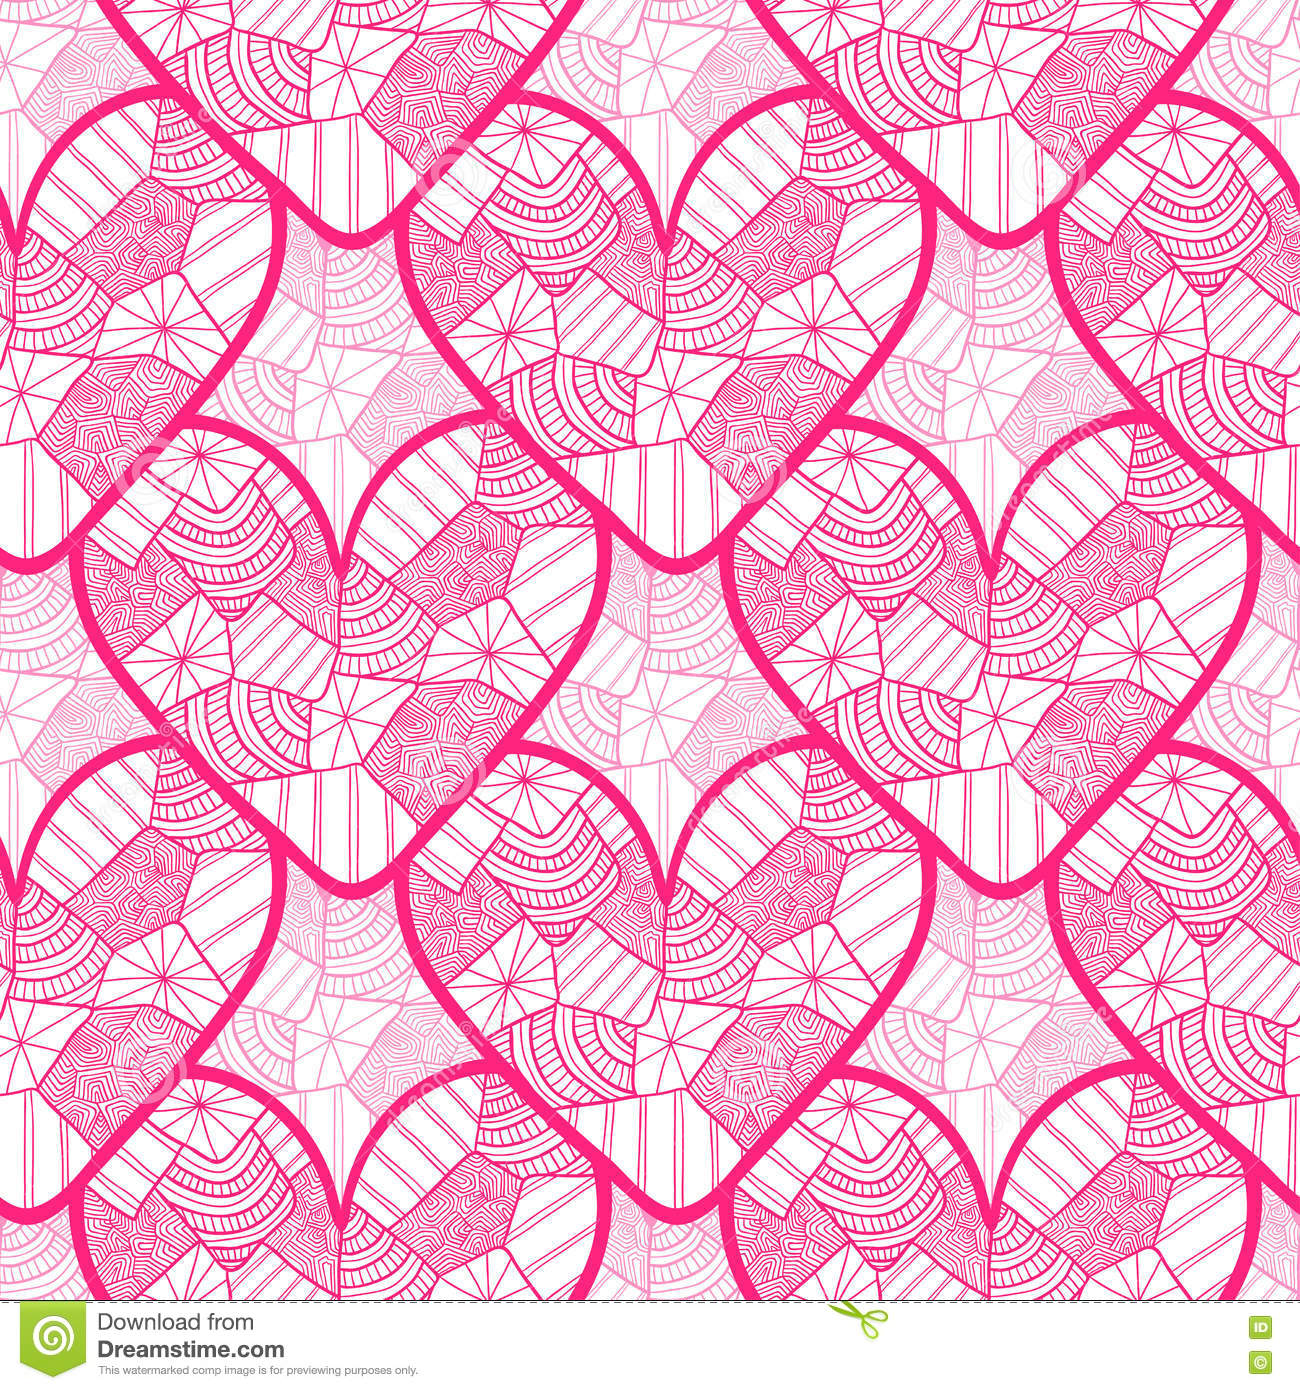 lace seamless pattern with ornamental hearts texture for valentines day wrapping paper wedding invitation background textile fa - Valentines Day Wrapping Paper